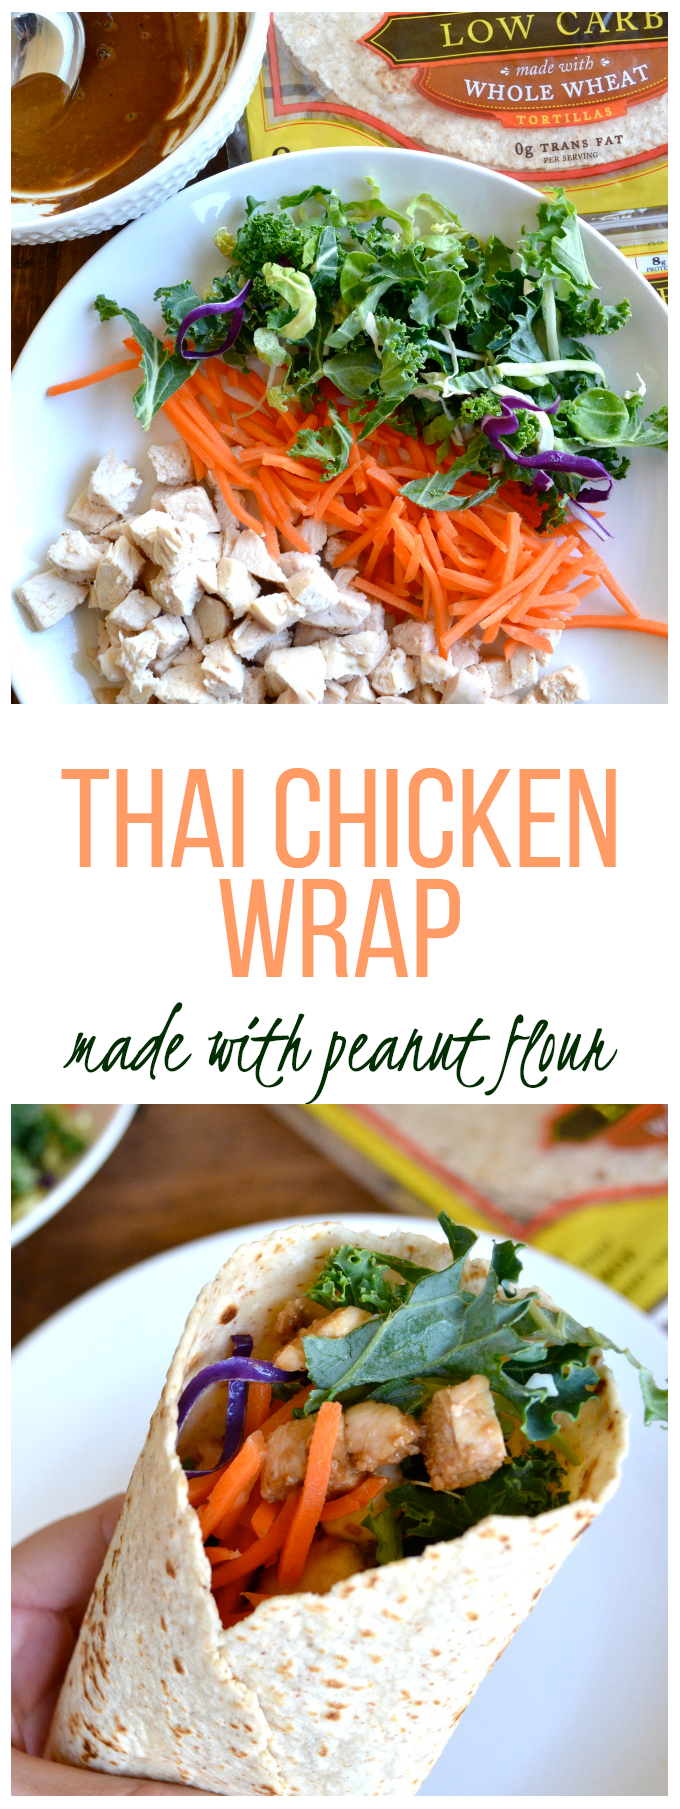 ... thai chicken wraps recipe myrecipes com thai chicken wraps recipes